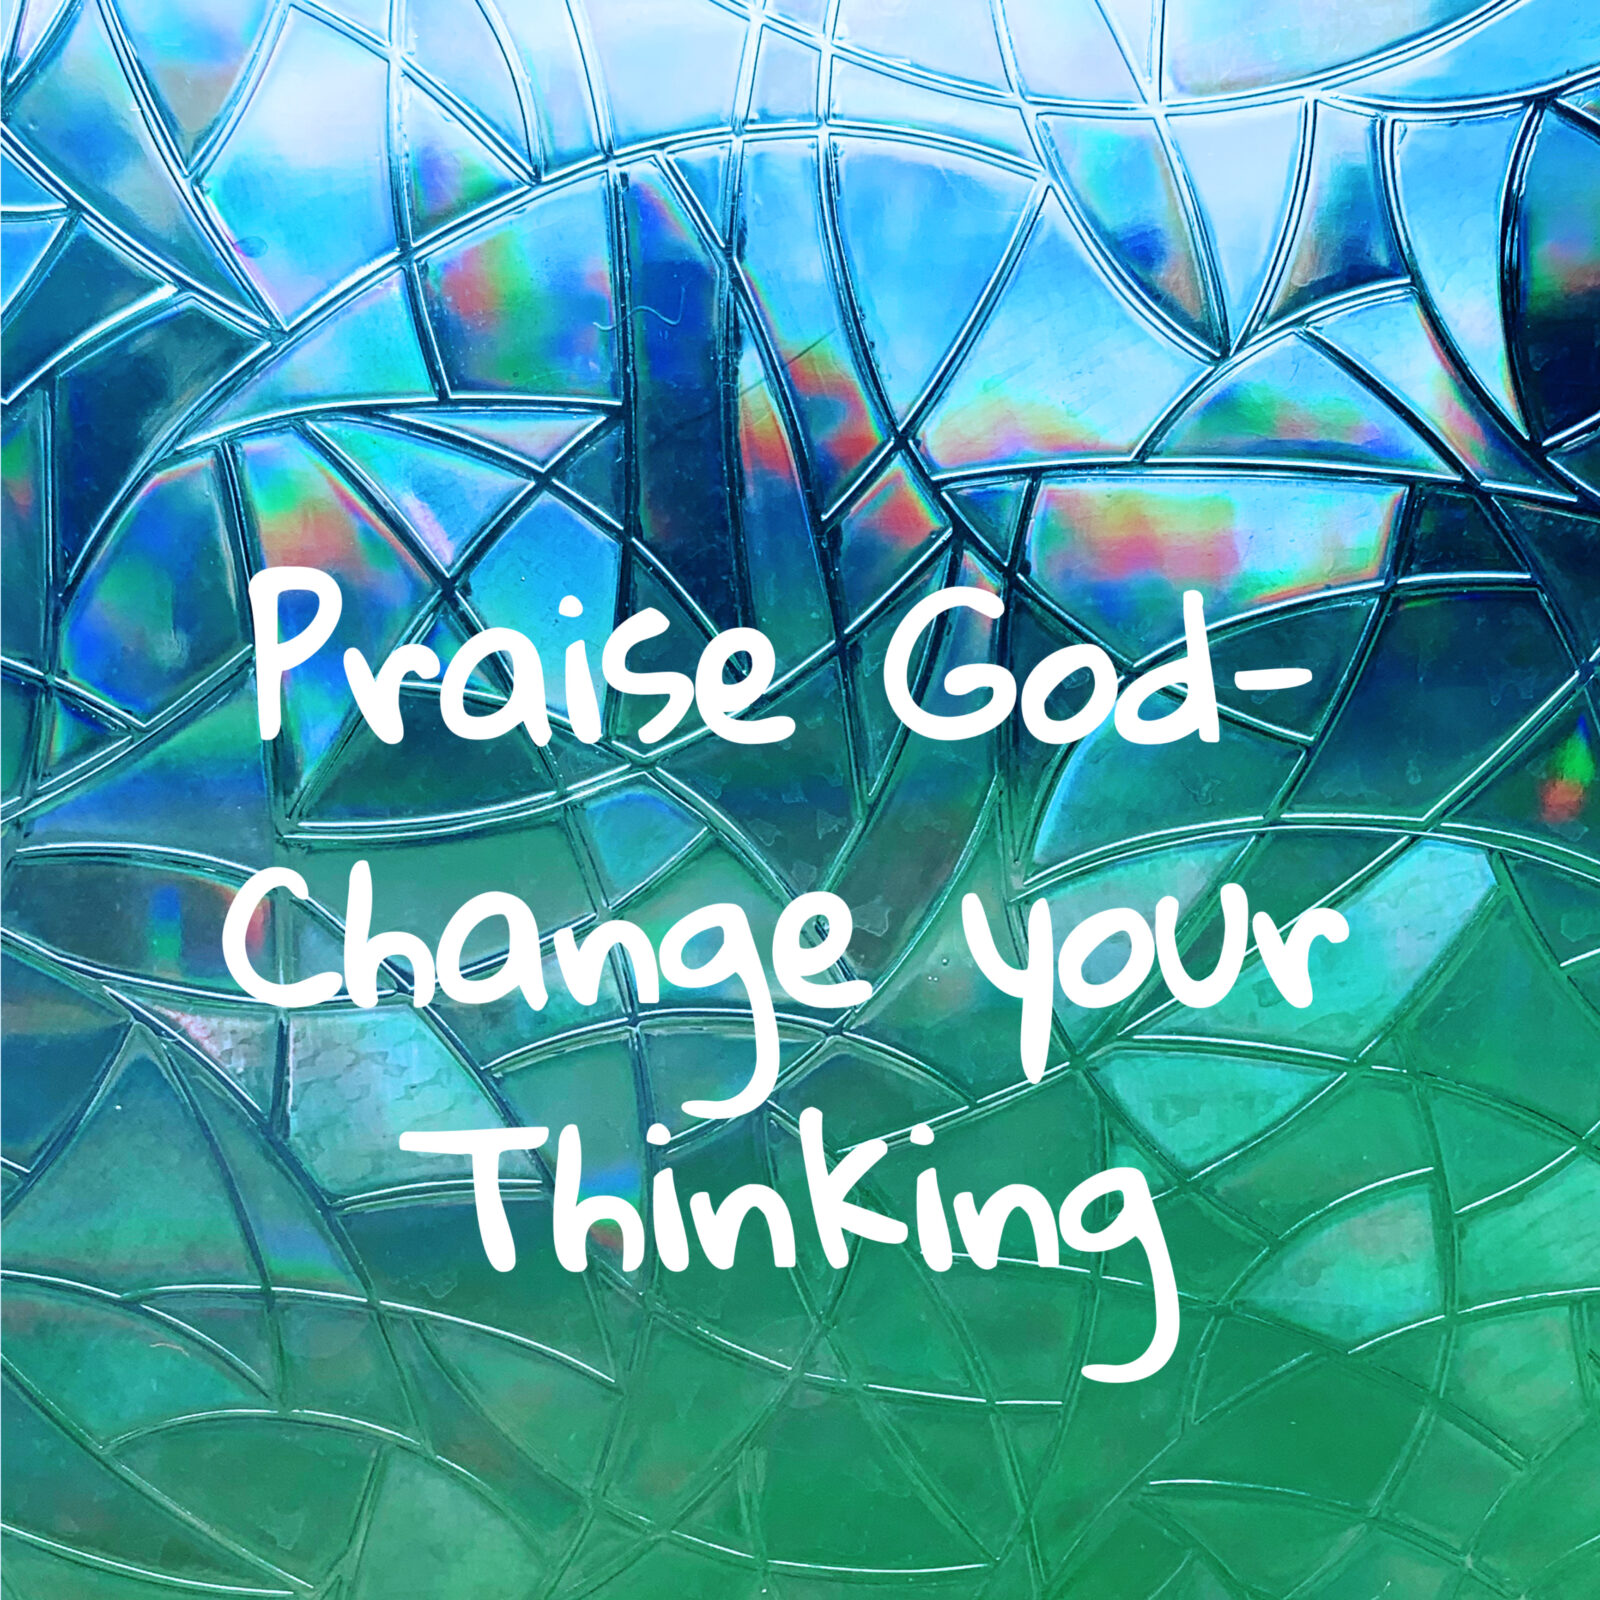 How to Praise God and Change your thinking